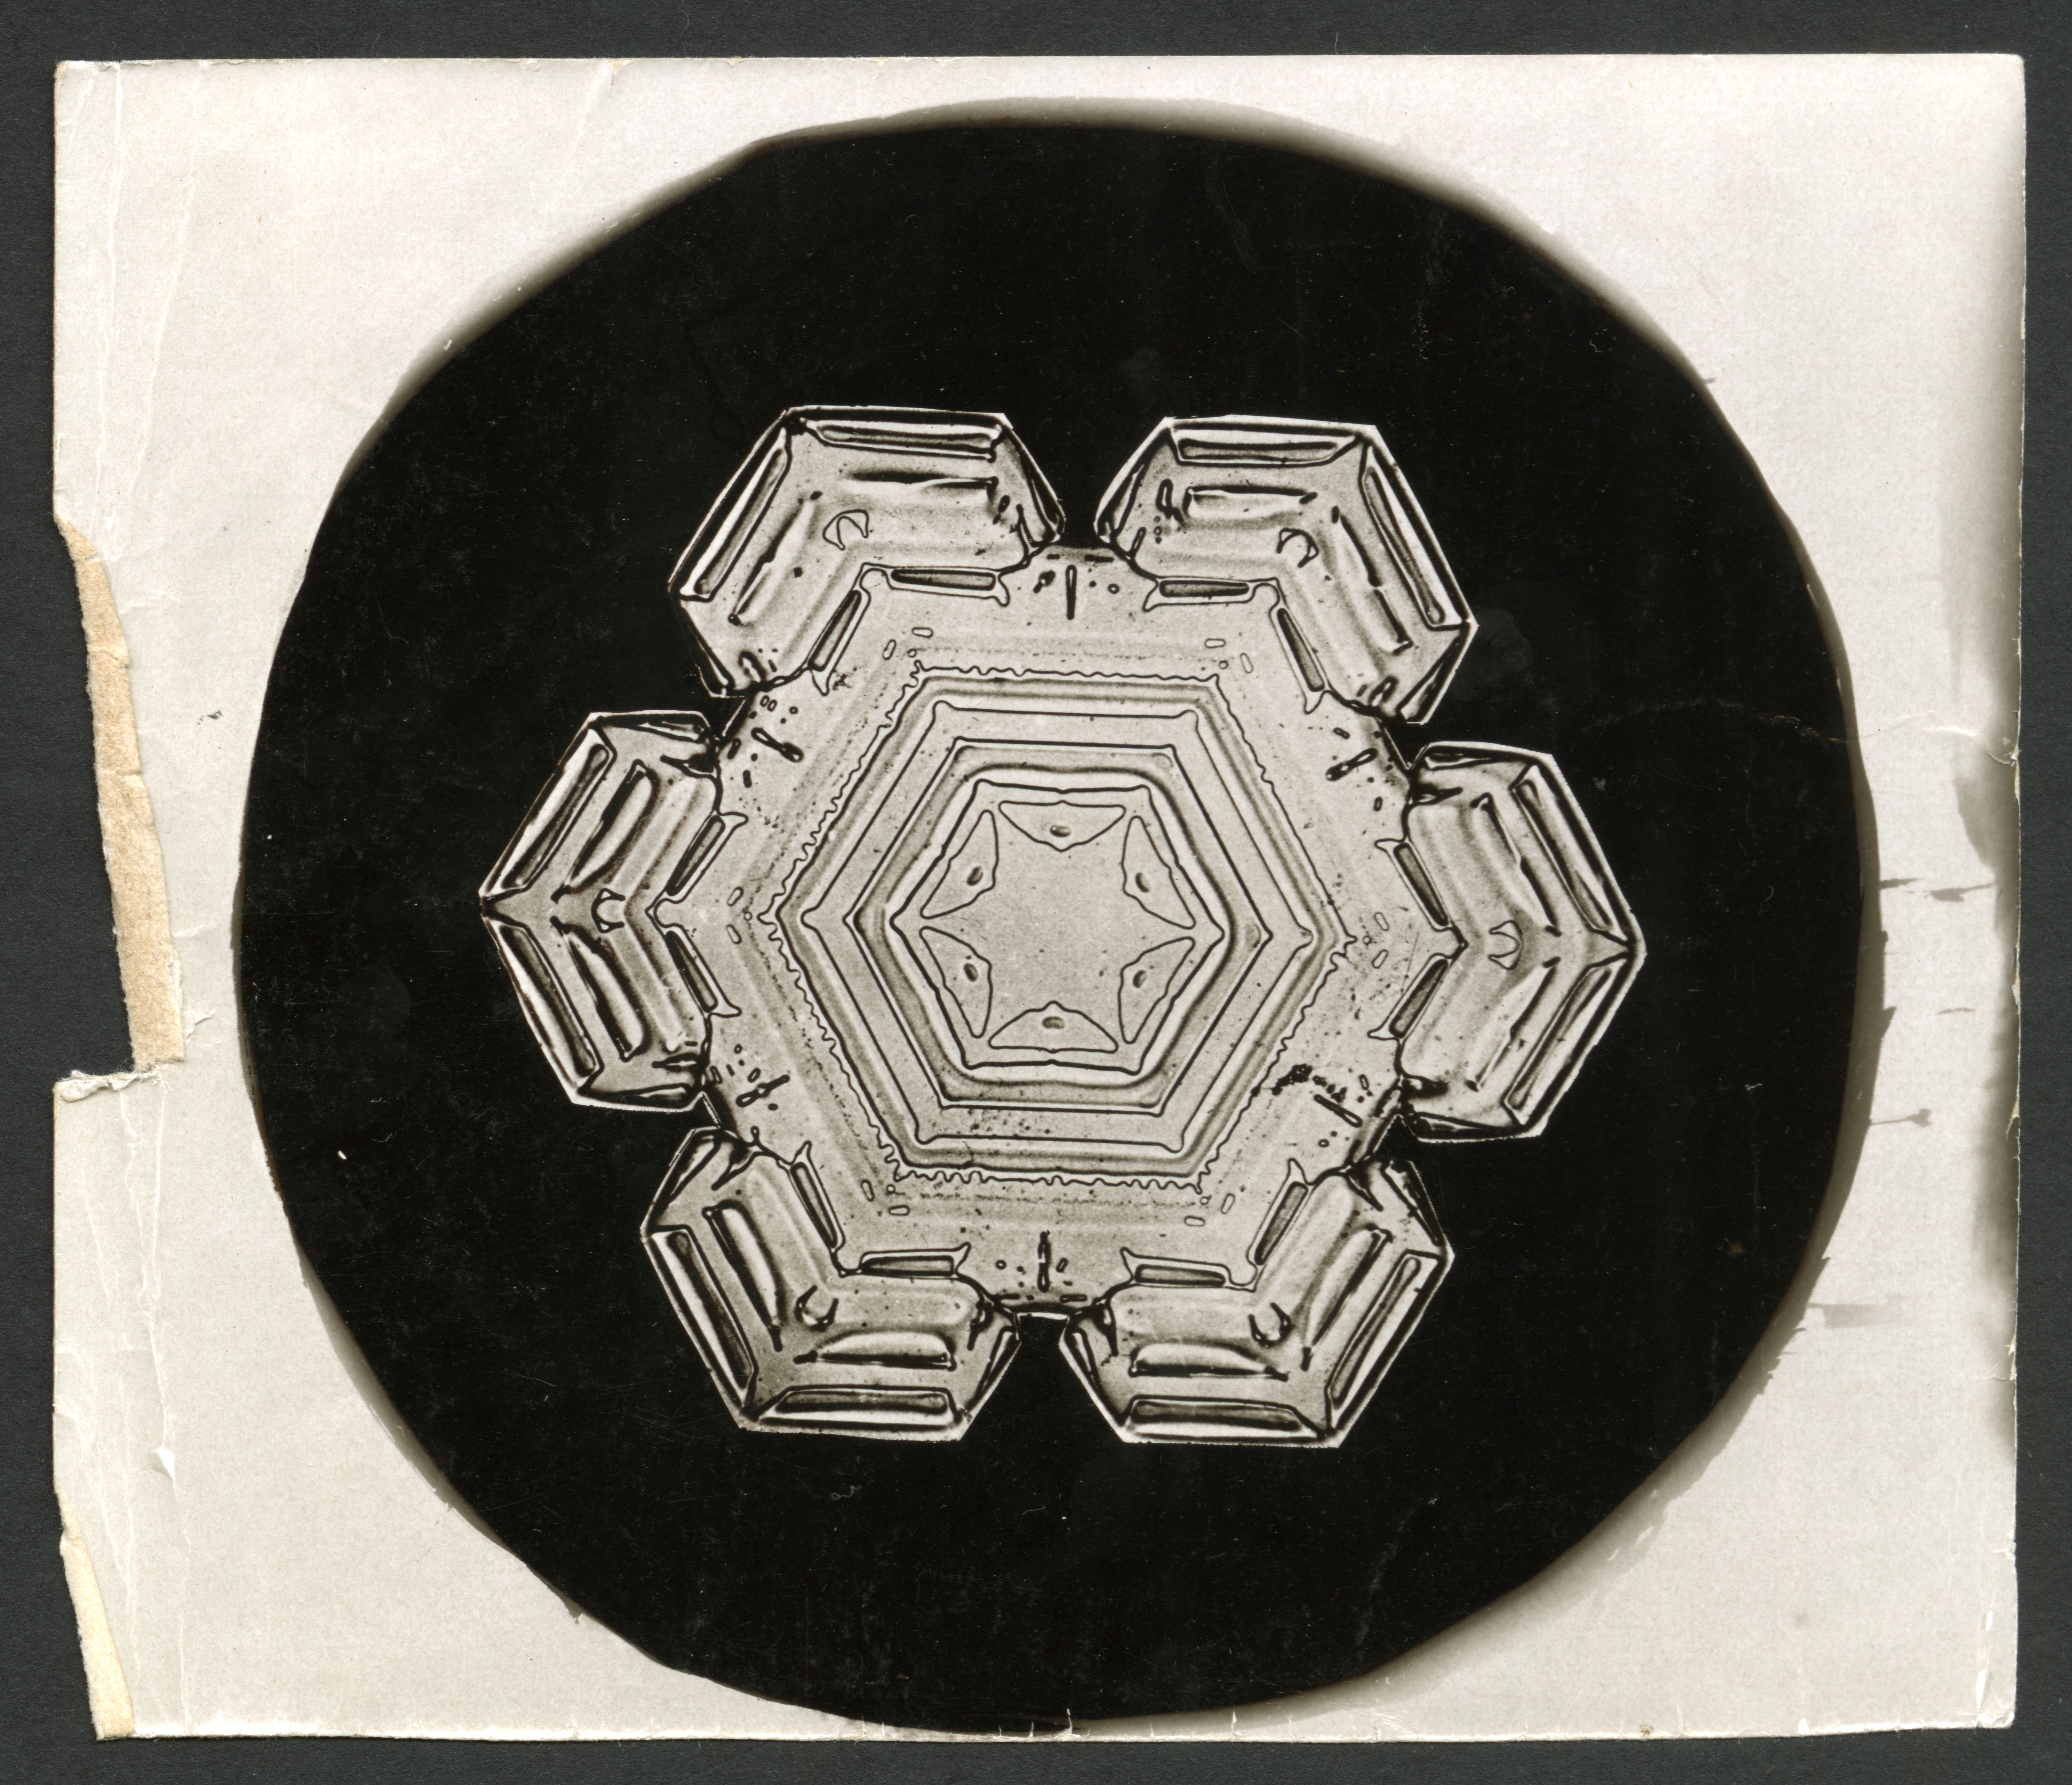 Original photograph of a snowflake with six thick limbs and a star with six points in the middle.